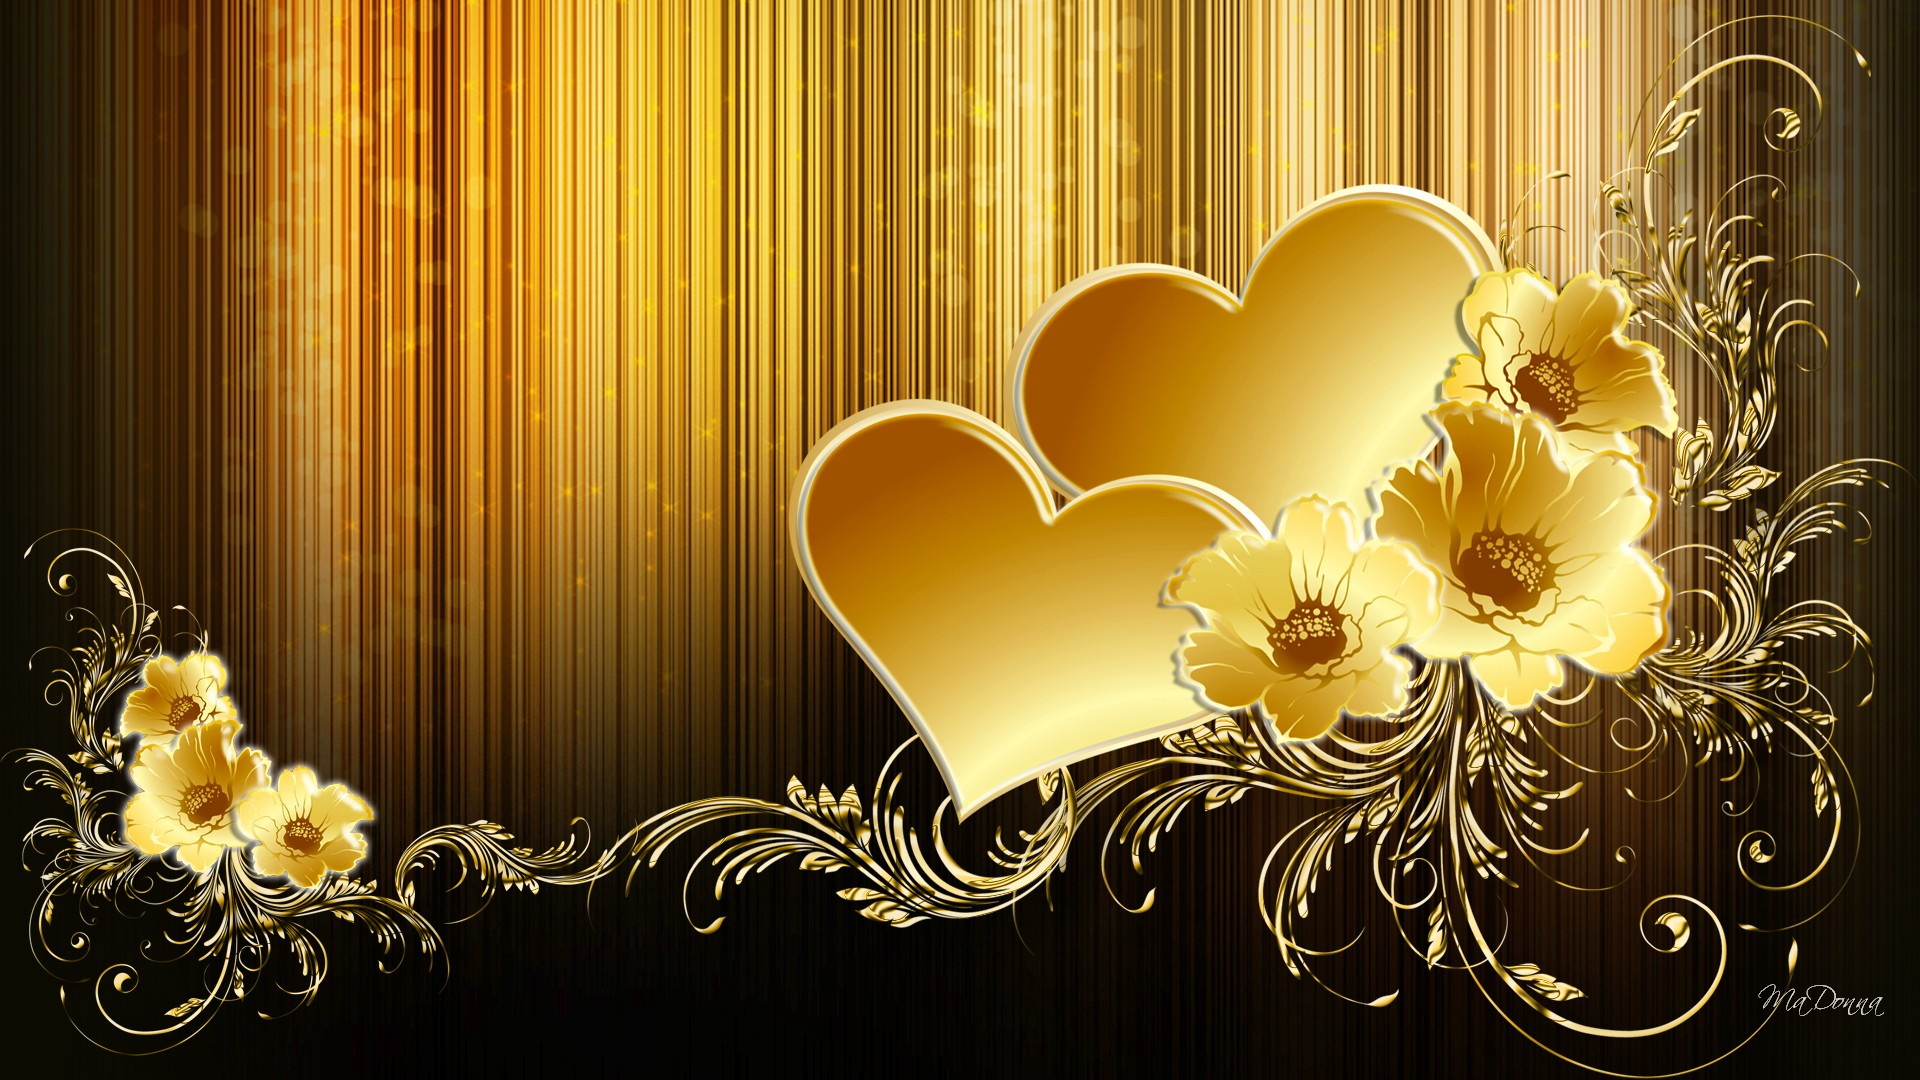 Hd Hearts Of Gold Wallpaper Download Free Xpx